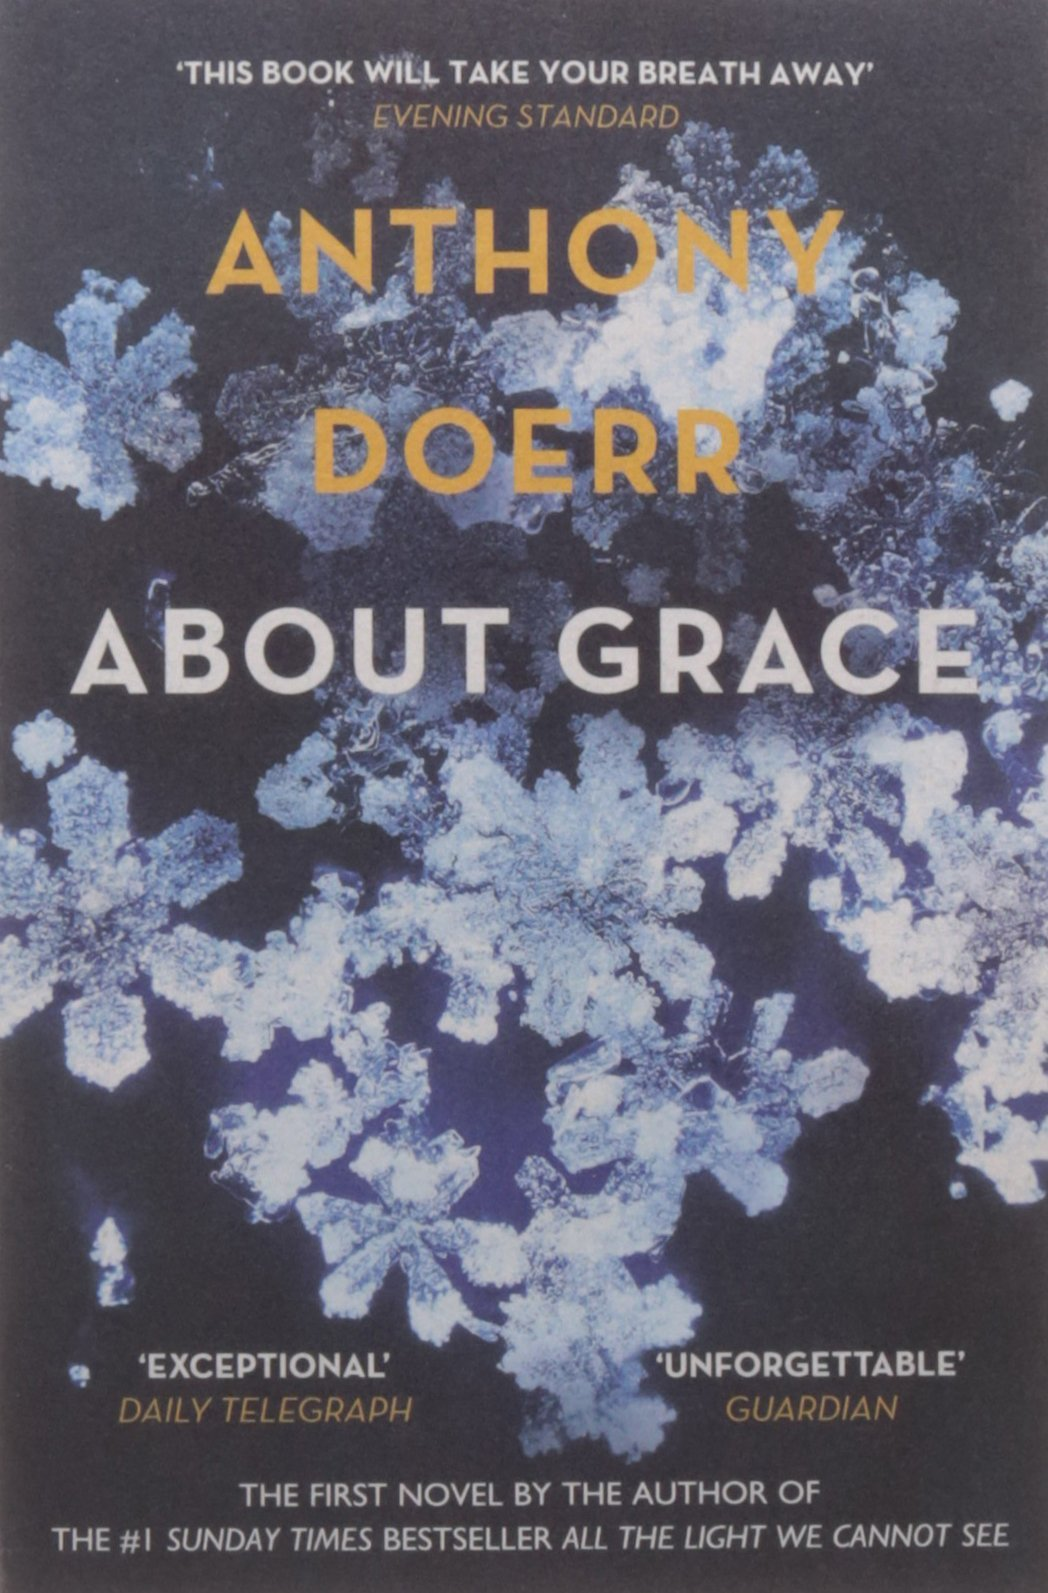 Anthony Doerr Collection 3 Books Bundle (all The Light We Cannot See, About  Grace, The Shell Collector): Amazon: Anthony Doerr: 9789123553402:  Books